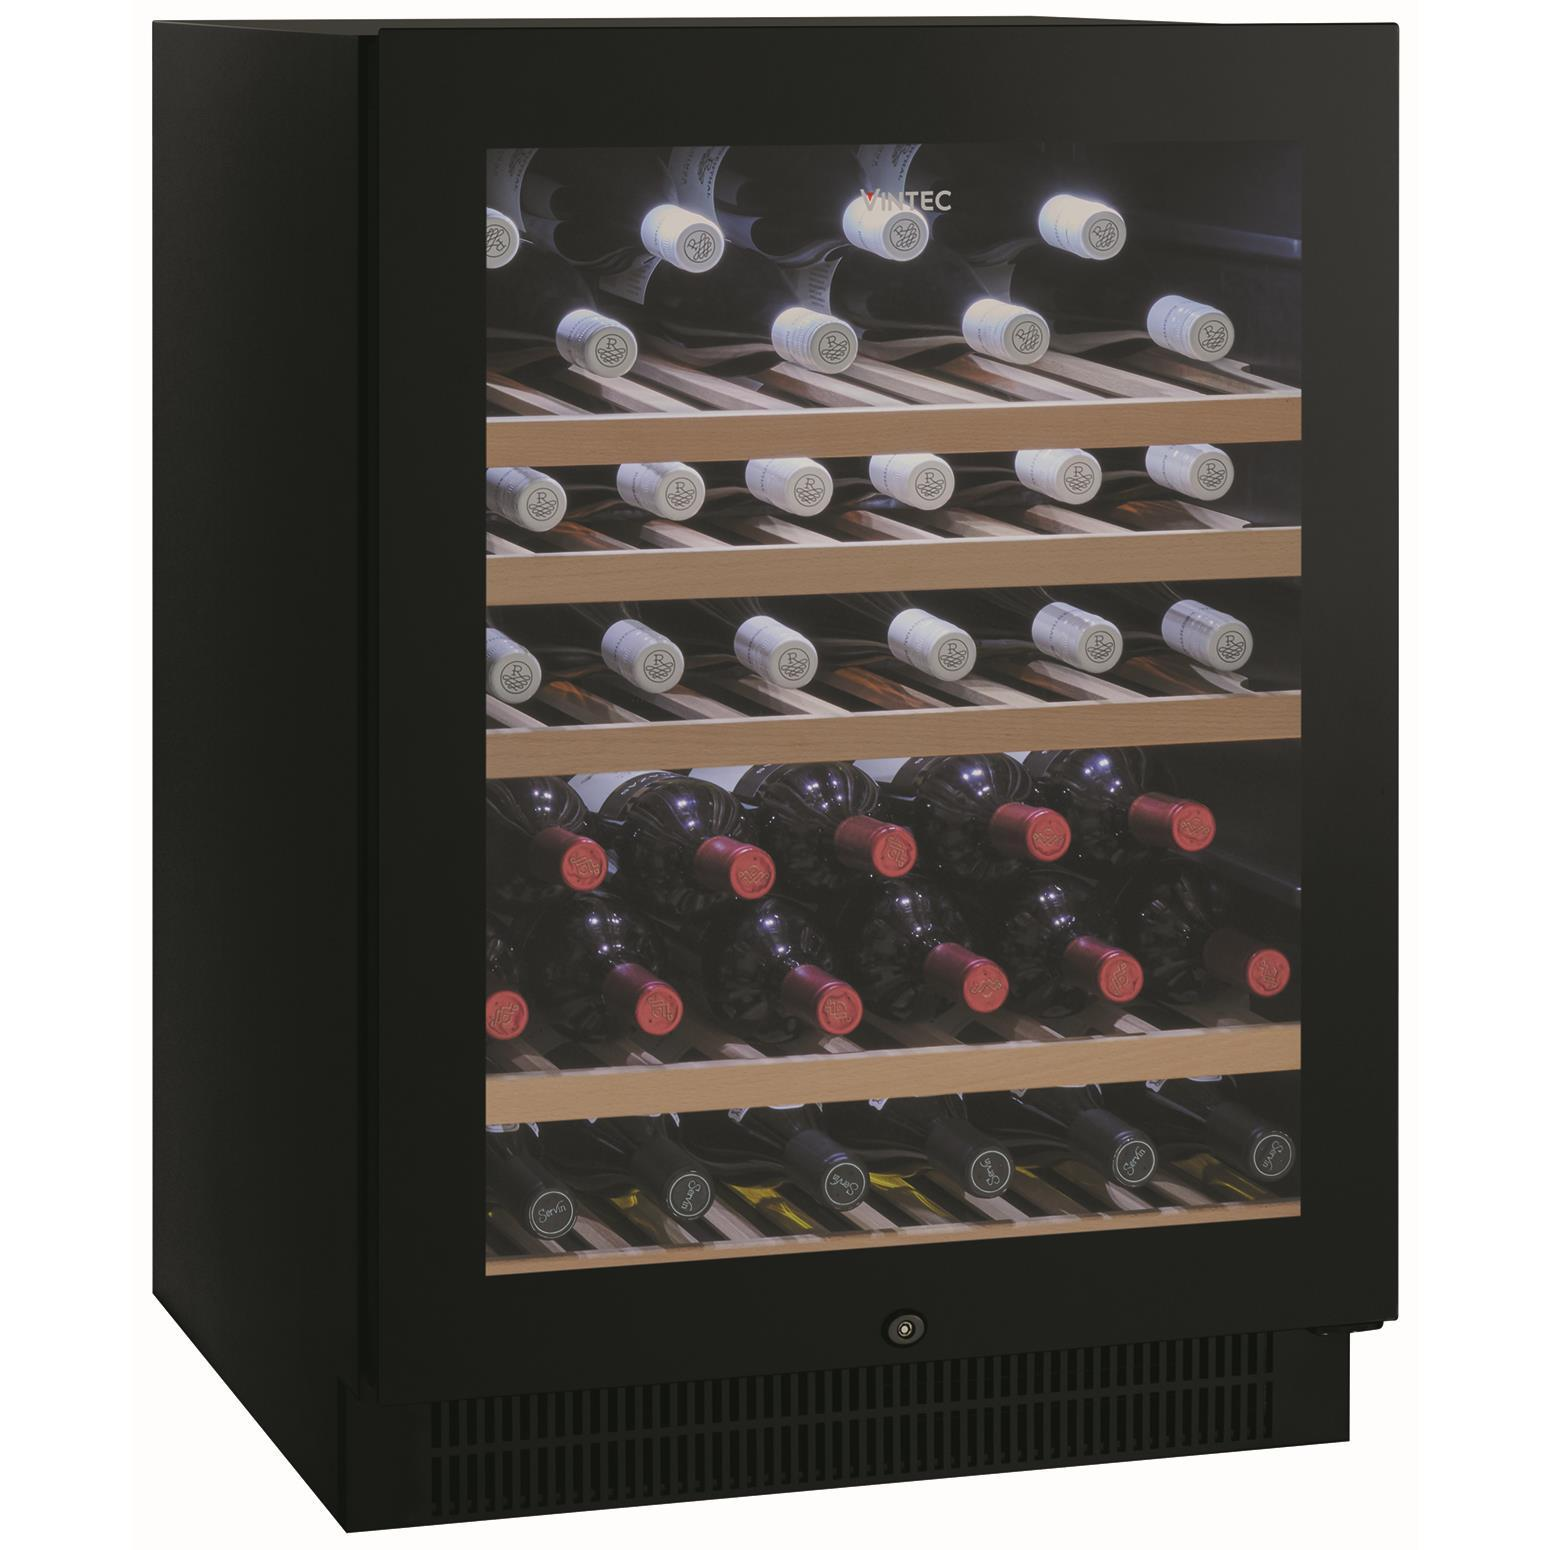 Vintec VWS050SBAX 50 Bottle Wine Cabinet